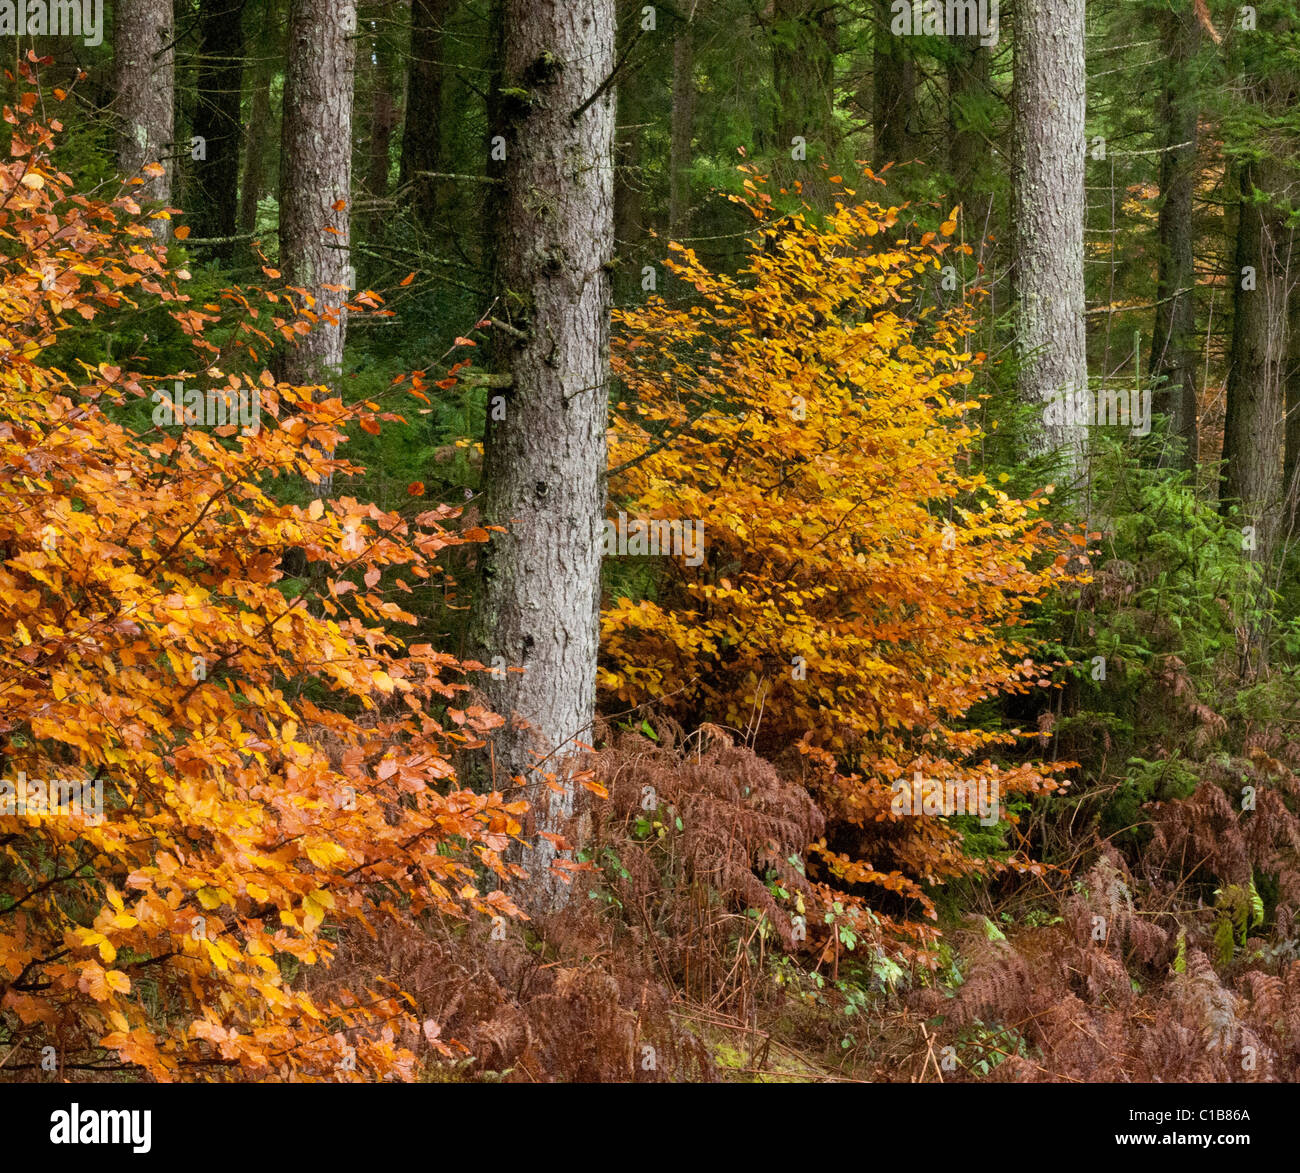 Rich orange browns of autumn beech leaves at foot of trunks of Spruce plantation Stock Photo